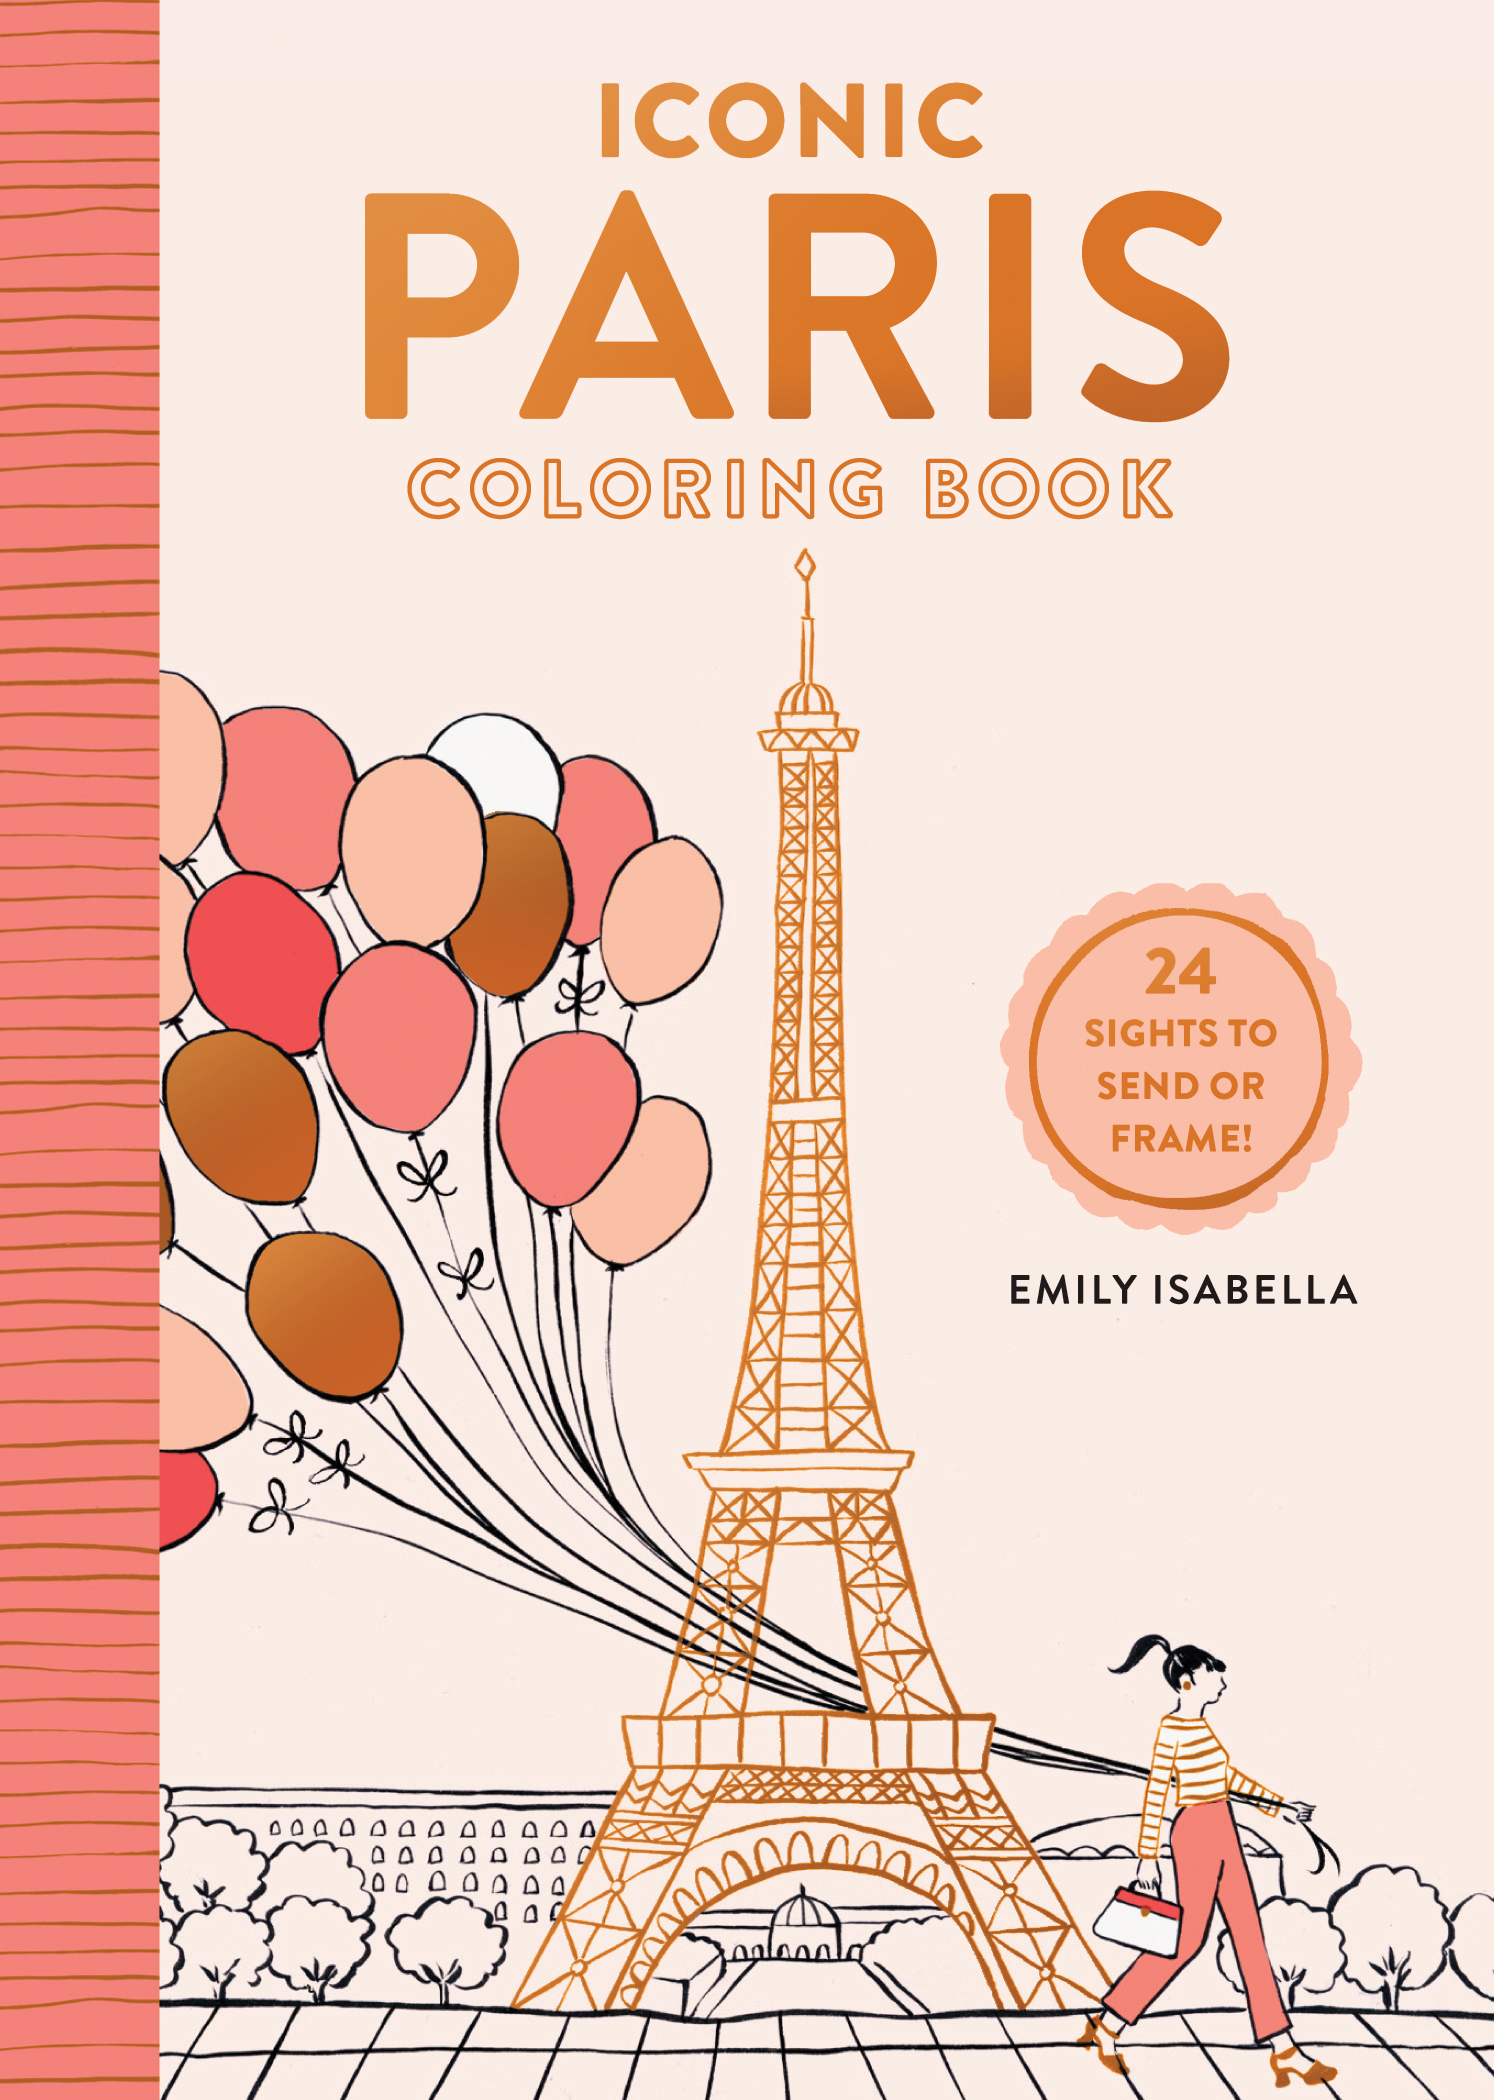 Iconic Paris Coloring Book - Workman Publishing